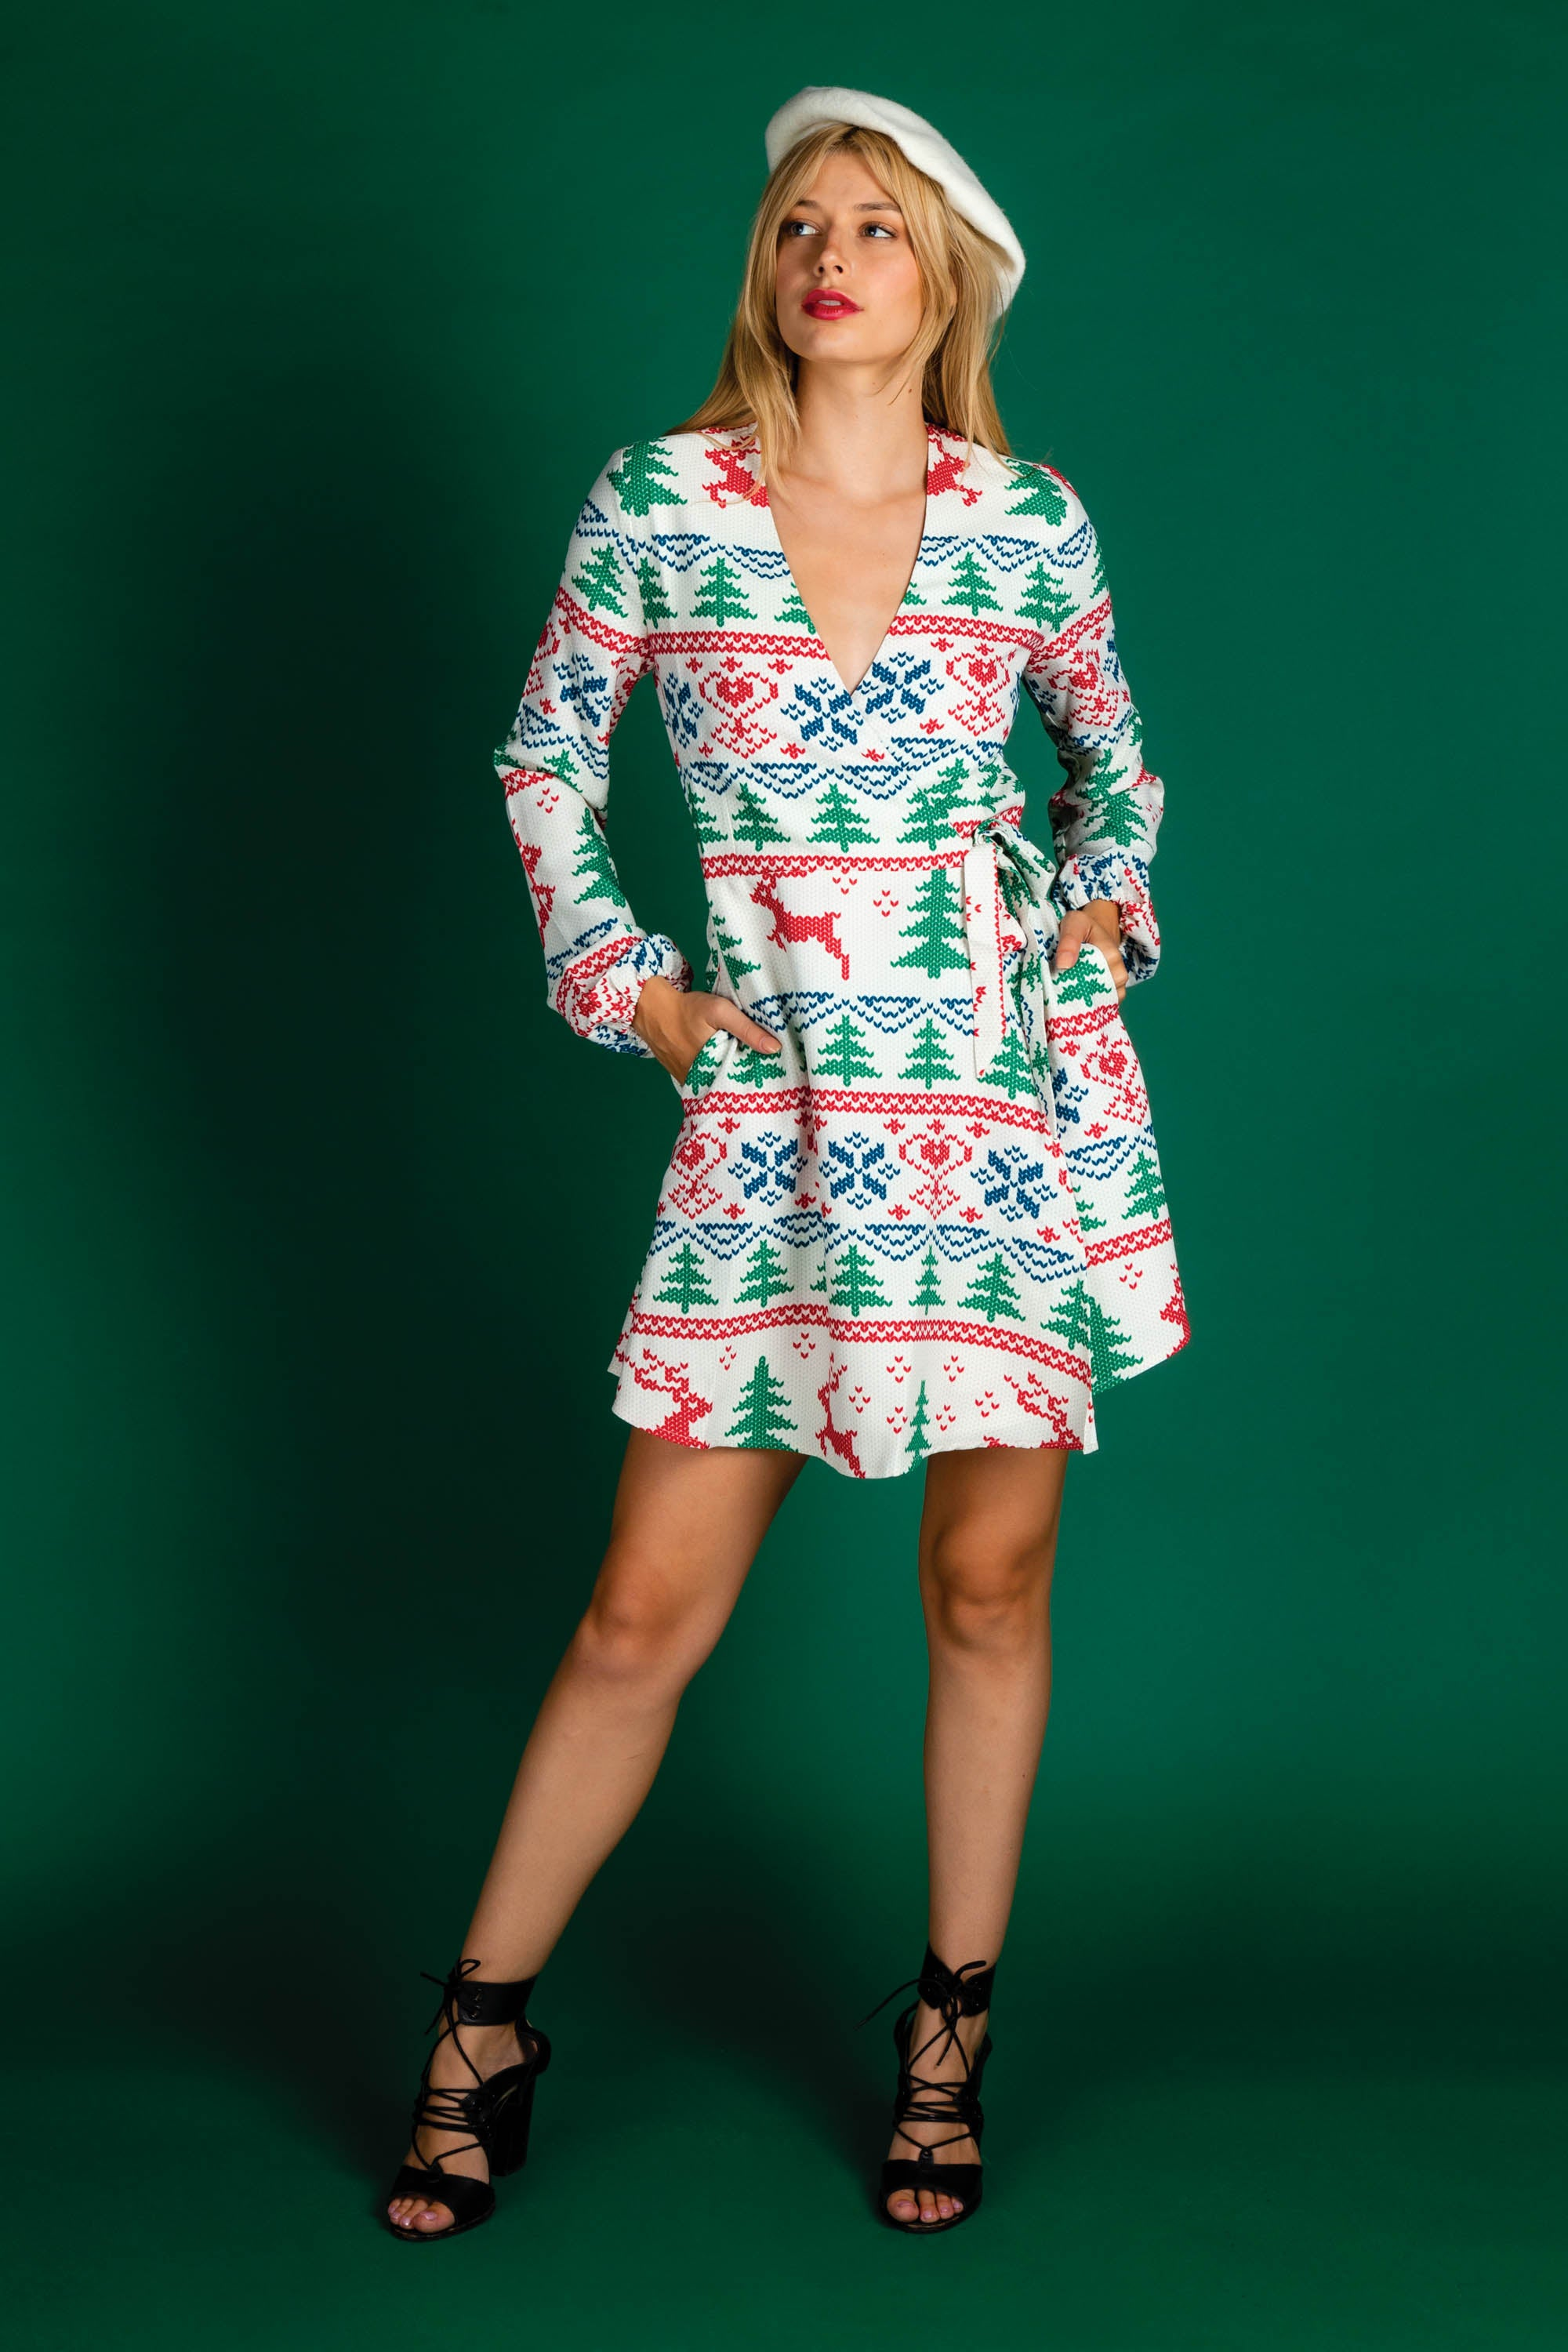 White Christmas Reindeer Wrap Dress The Offly White